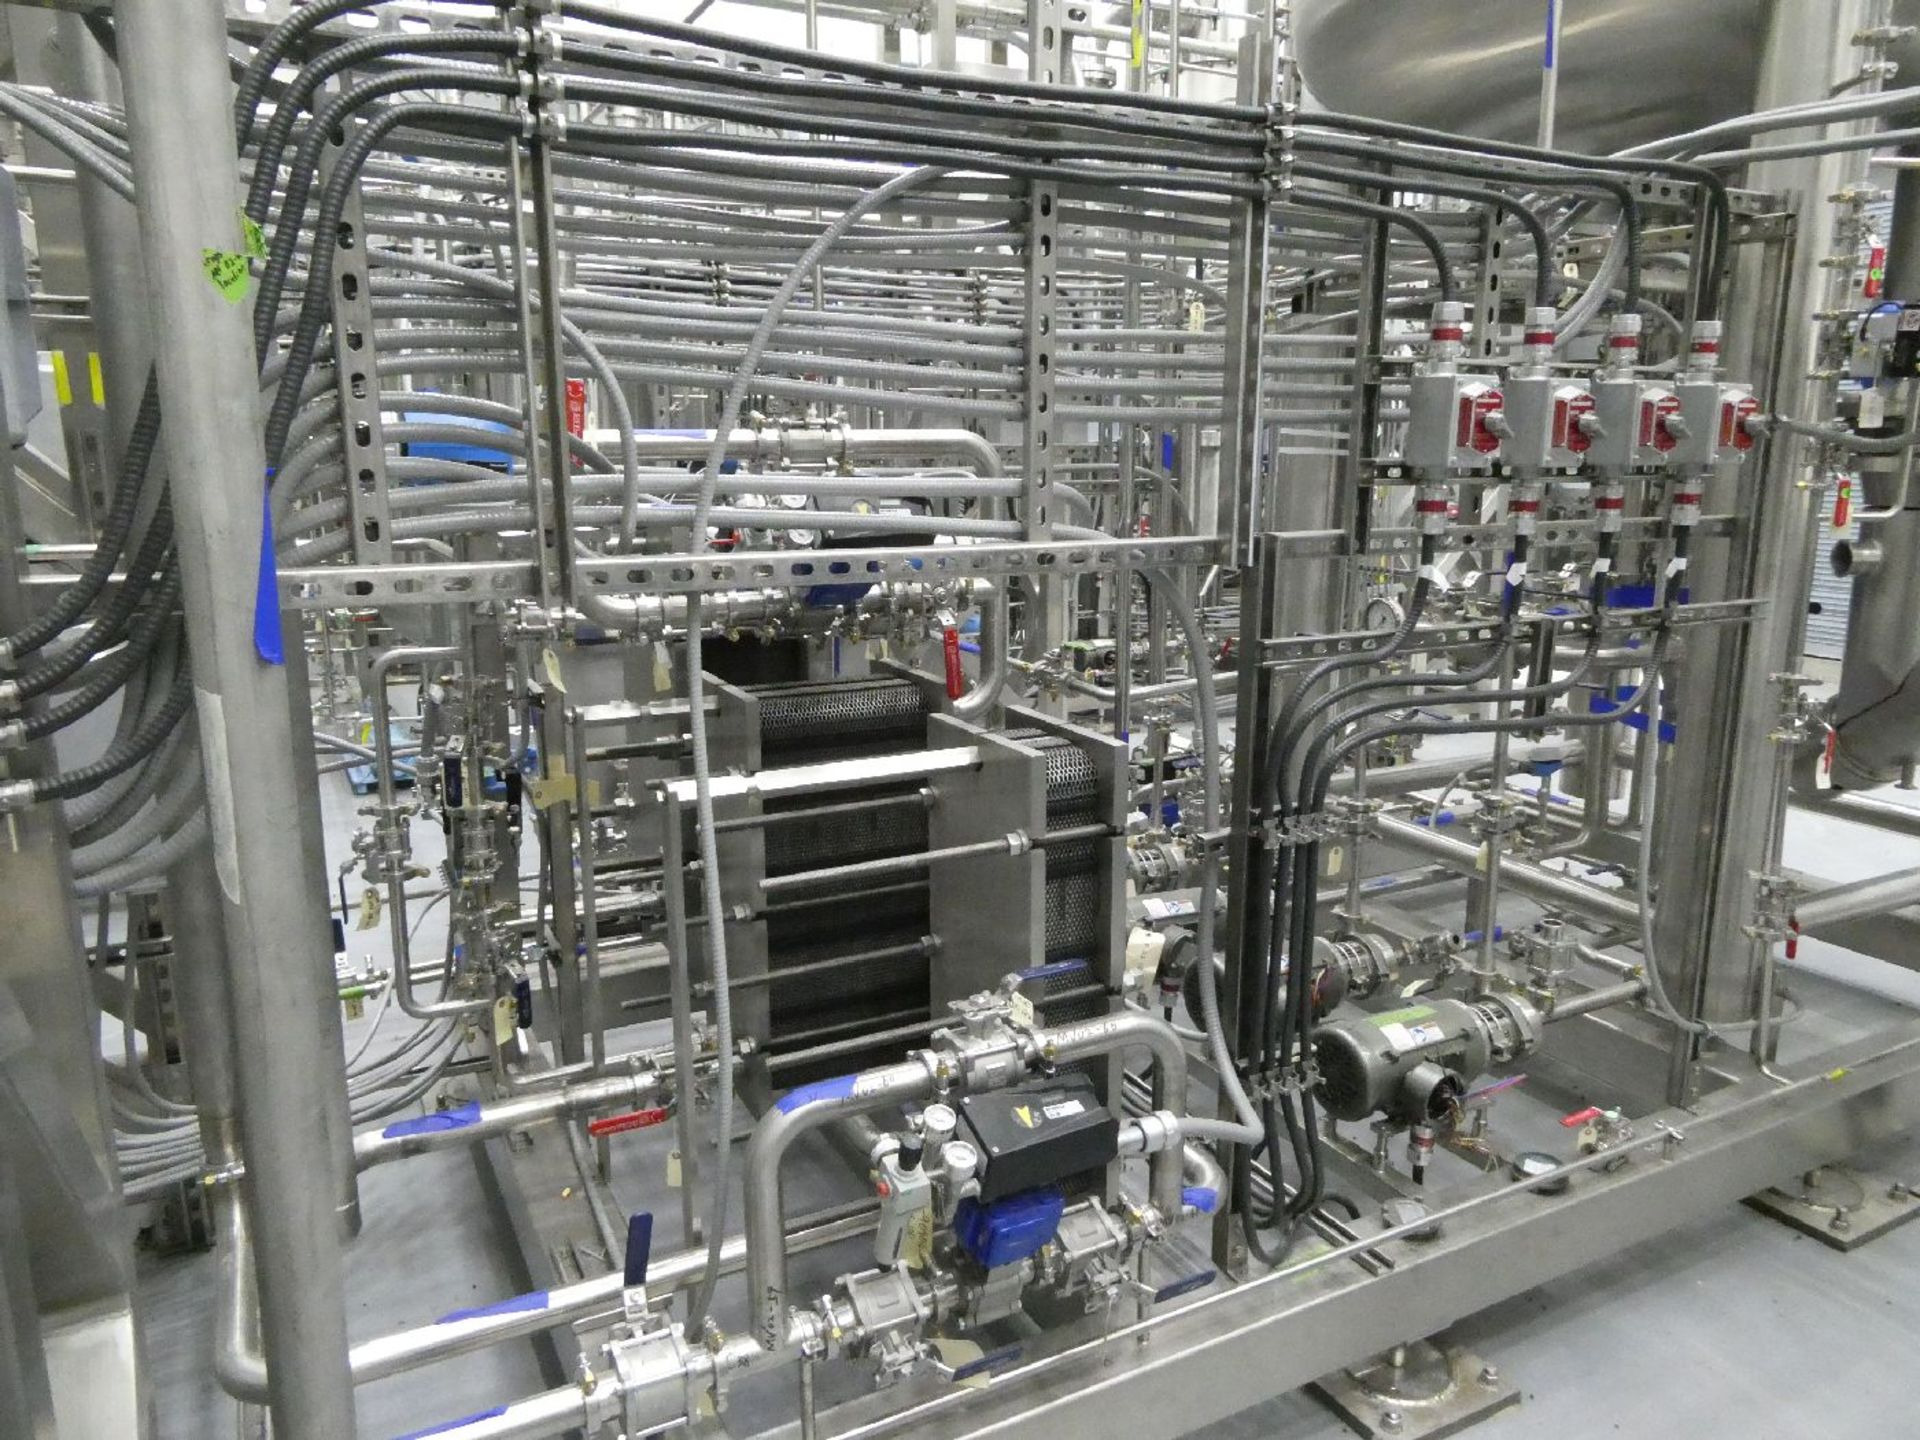 ROTAX Closed Loop Solvent Based Continuous Oil Extraction System - Image 14 of 68